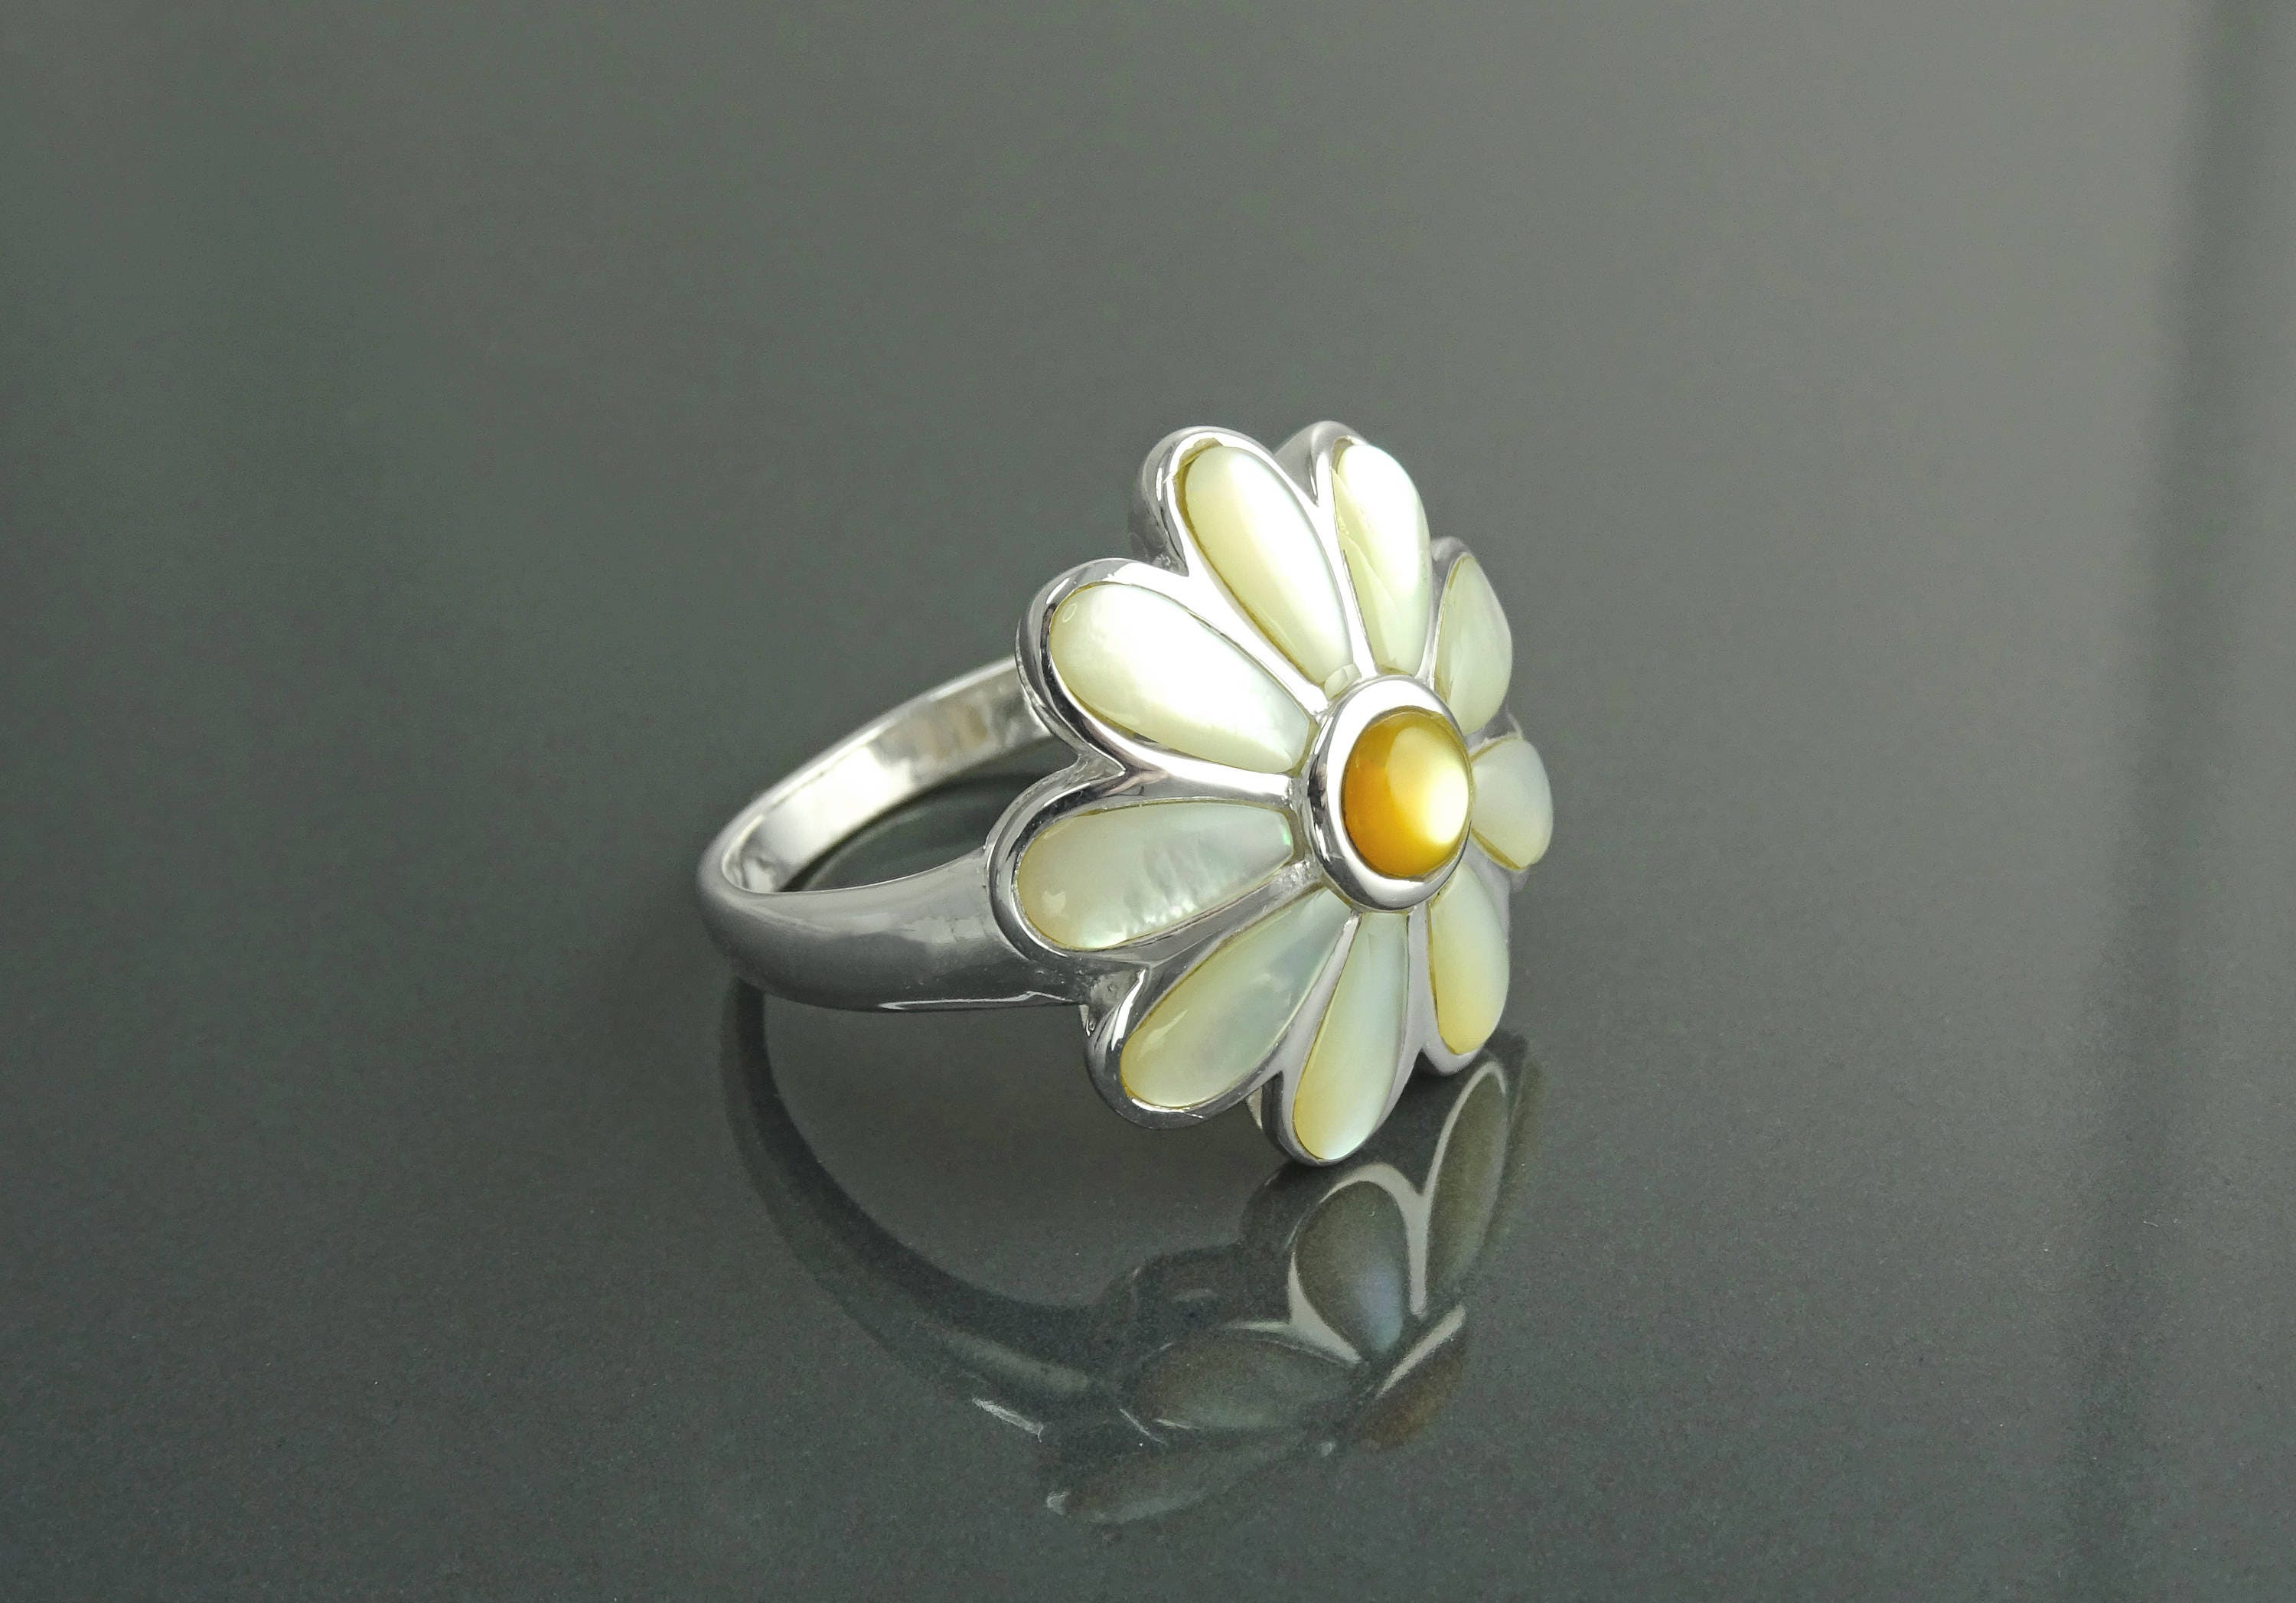 Daisy flower ring sterling silver genuine white mother of pearl daisy flower ring sterling silver genuine white mother of pearl petals daisies band ring flower ring blossom floral ringnature jewelry izmirmasajfo